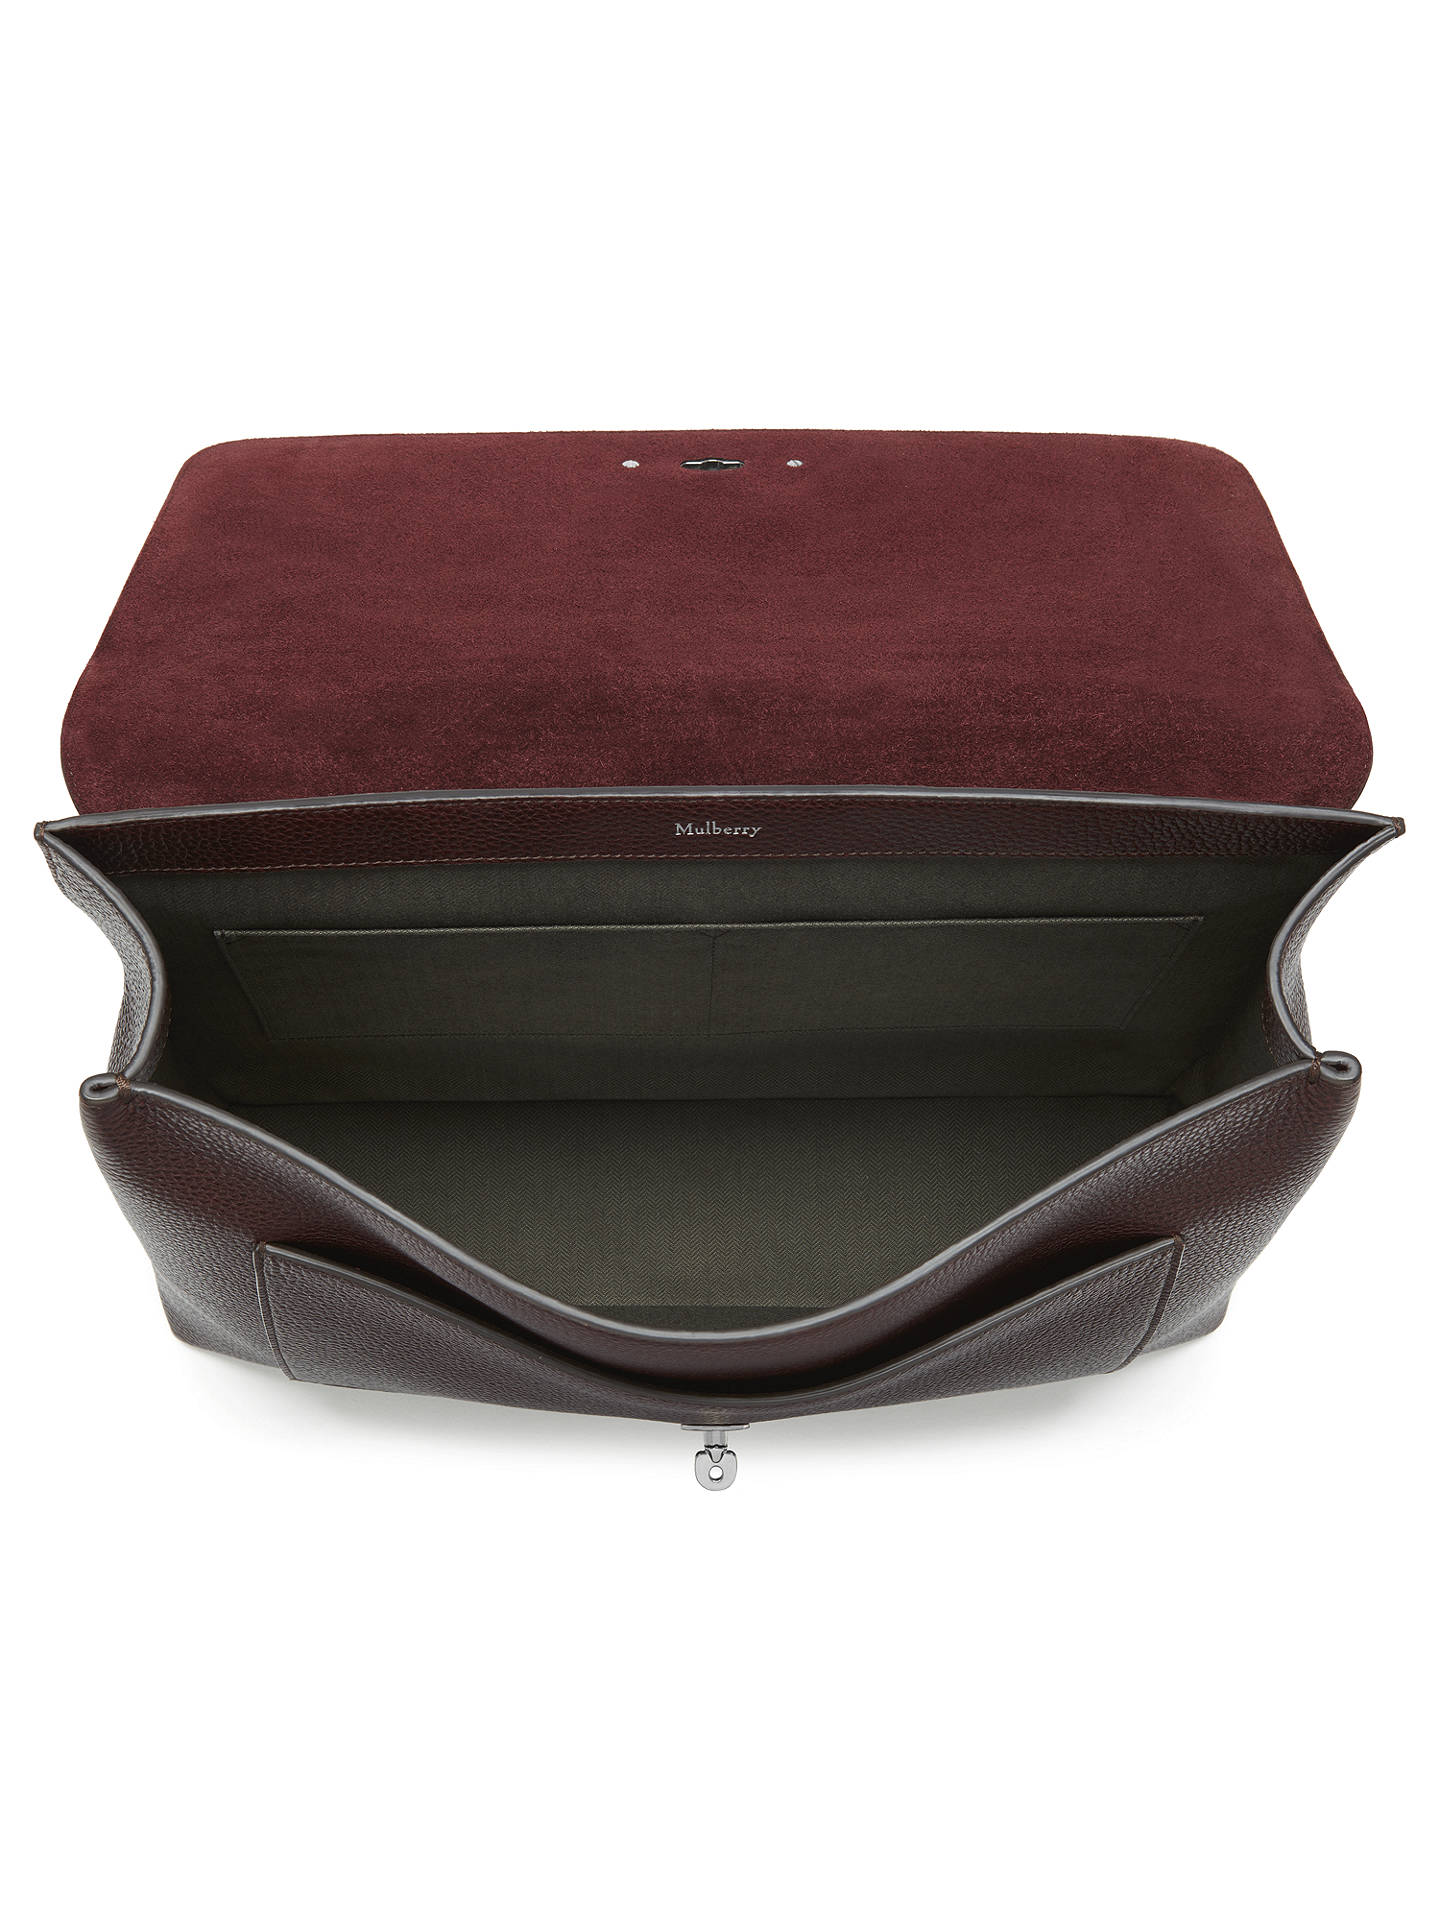 cfb052ace8 ... get buymulberry anthony east west messenger bag oxblood online at  johnlewis b17a4 acad1